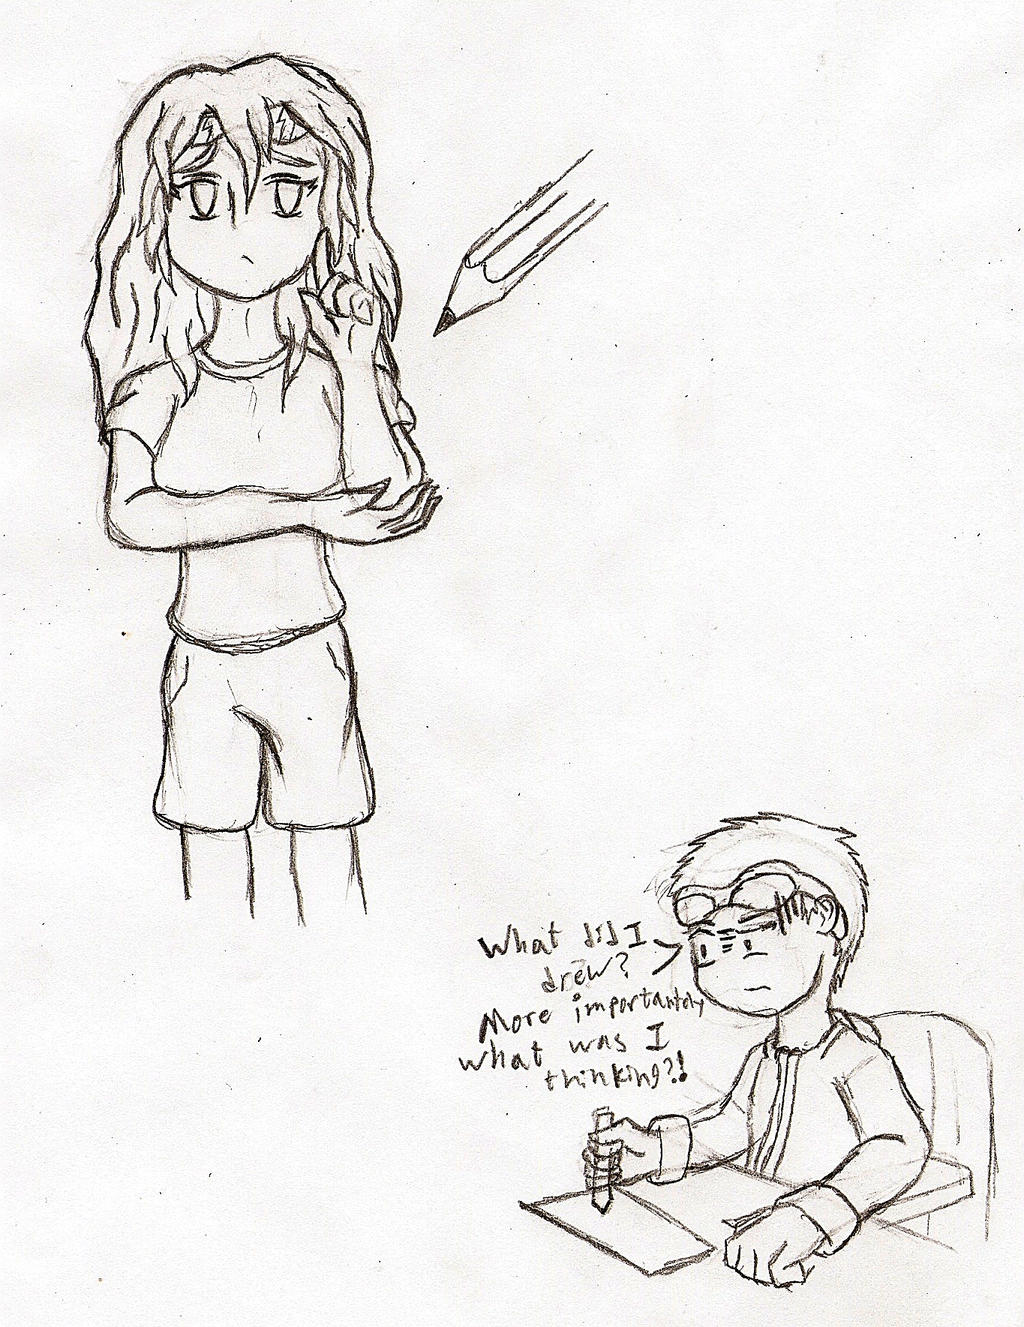 A Gender-bended ME!?! WHAT THE FRAG!!?!?! by NeonNeoz